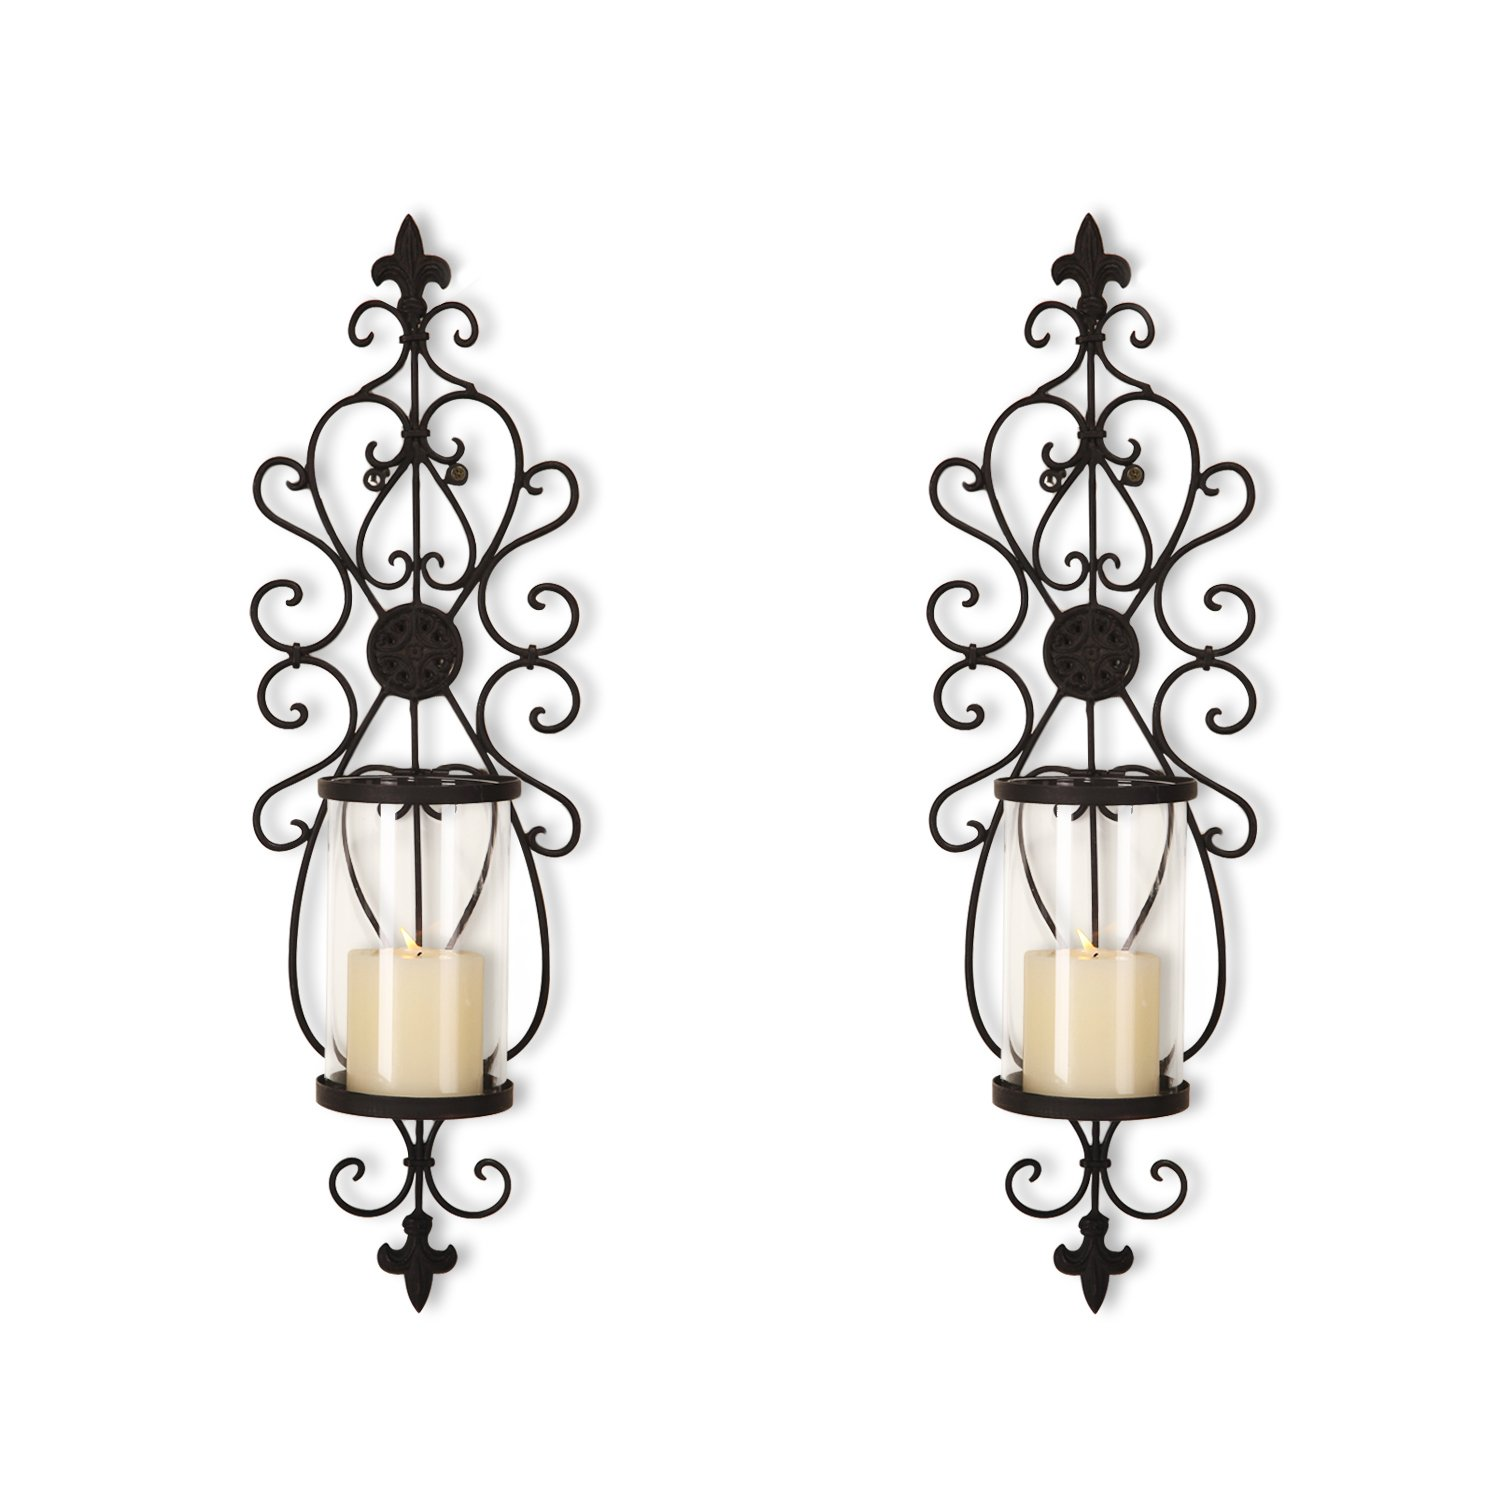 Joveco Decorative Wall Mount Candle Sconces Holders Set of 2 Antique